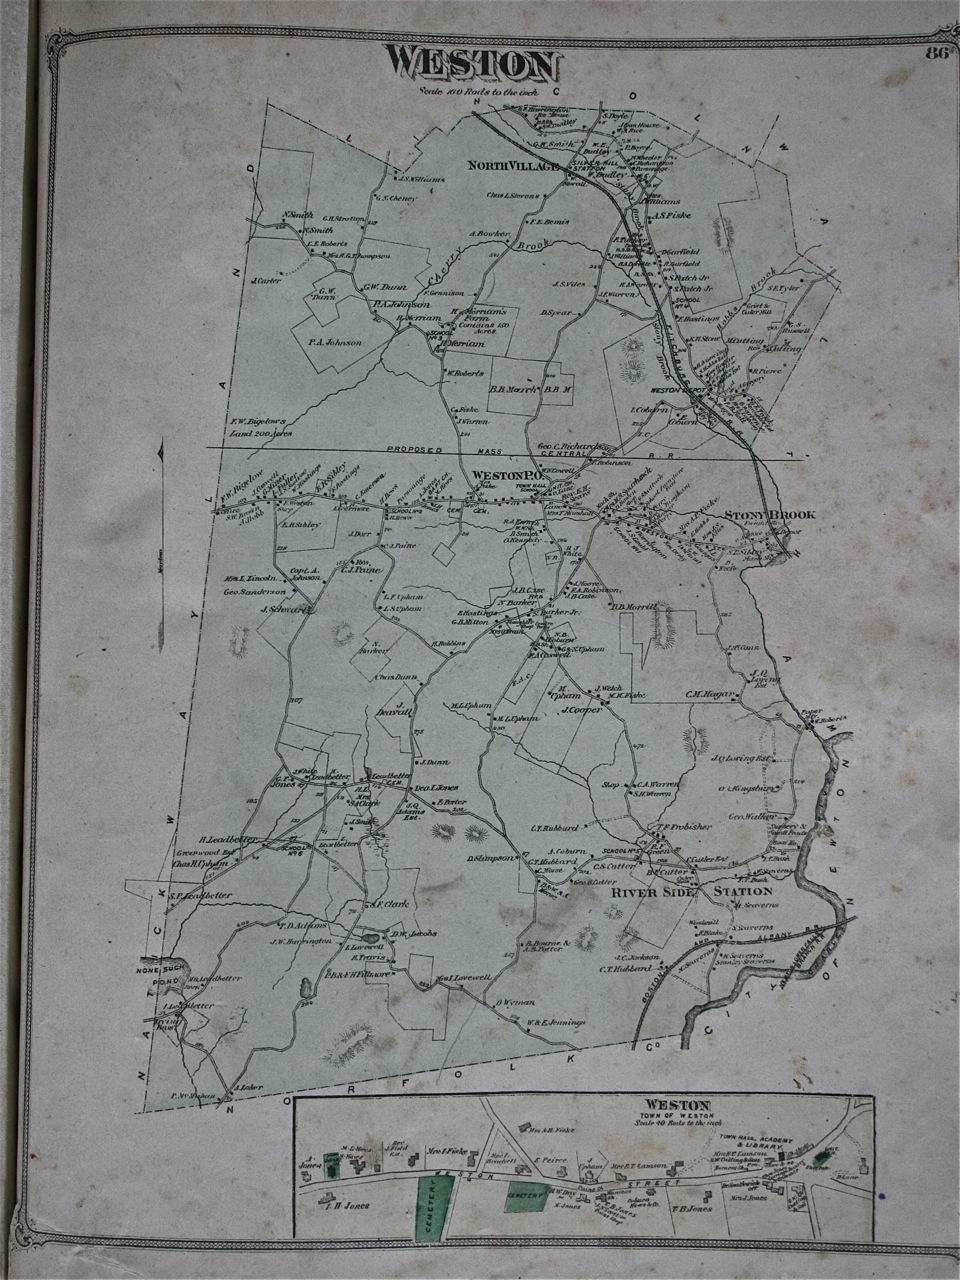 Middlesex County Atlas 1875